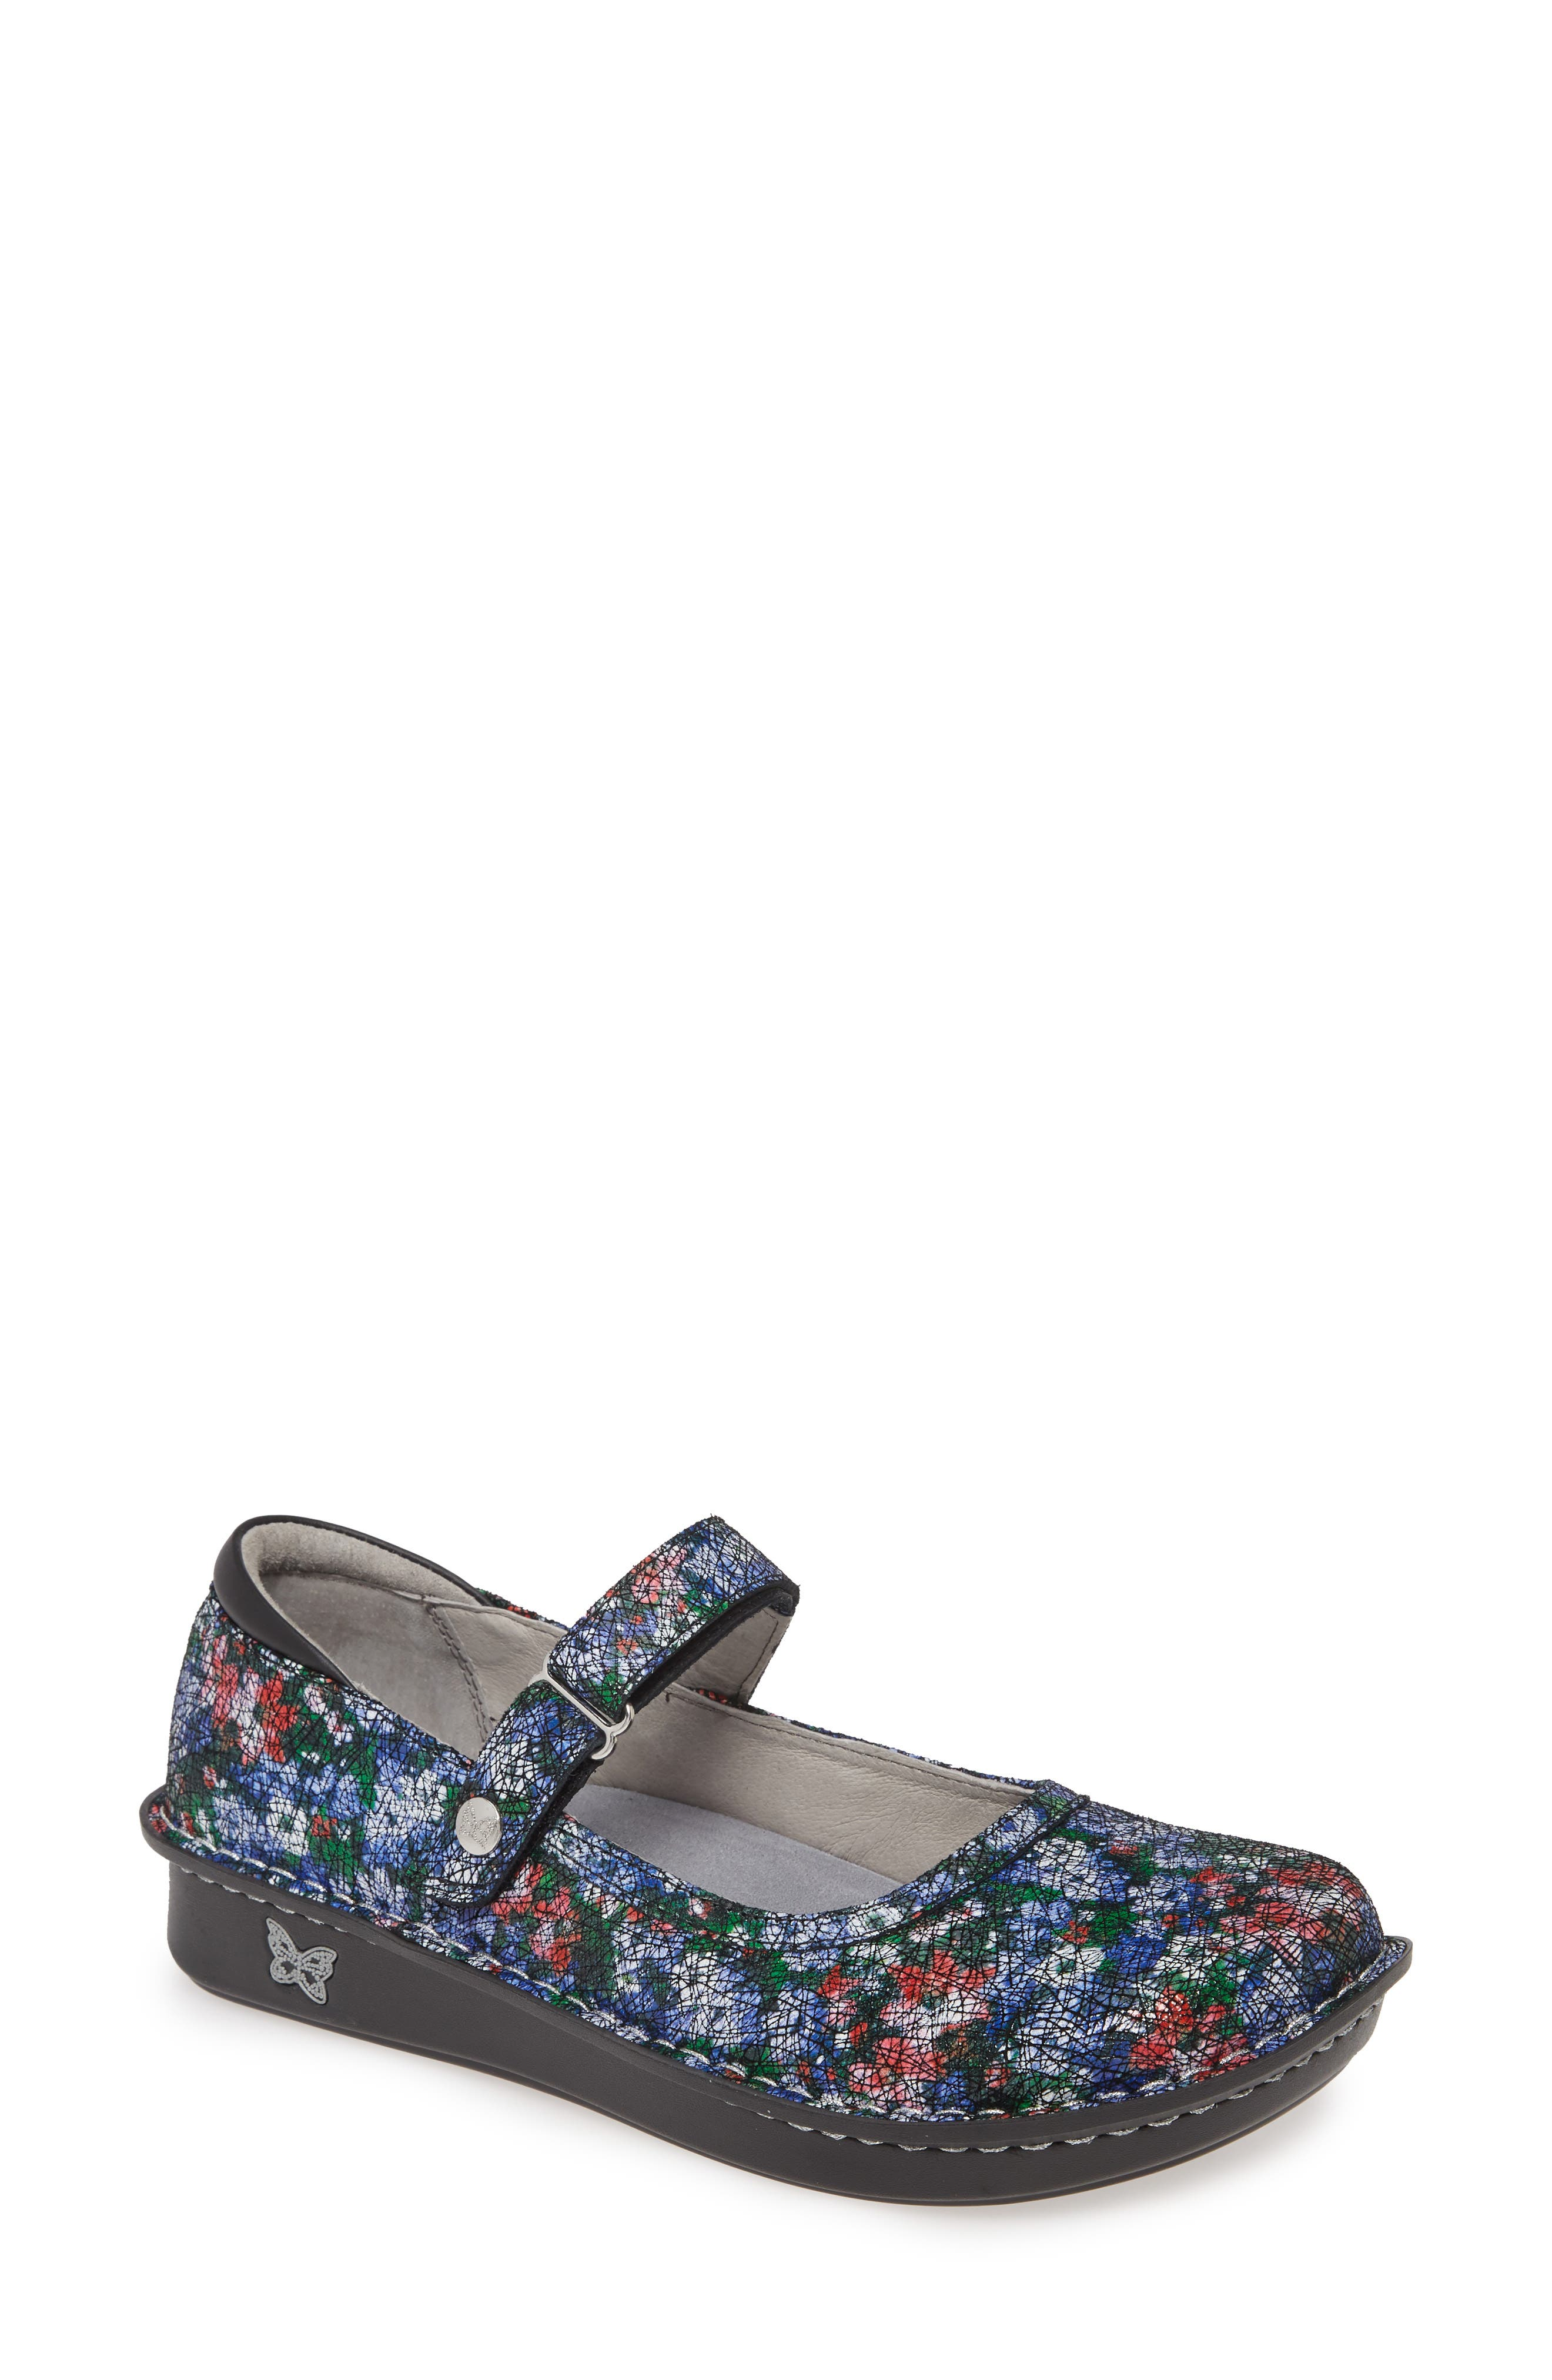 A lightweight rocker platform perfects the all-day ease of a feminine slip-on designed with plenty of plush, memory-foam cushioning. Style Name: Alegria \\\'Belle\\\' Slip-On. Style Number: 577037. Available in stores.